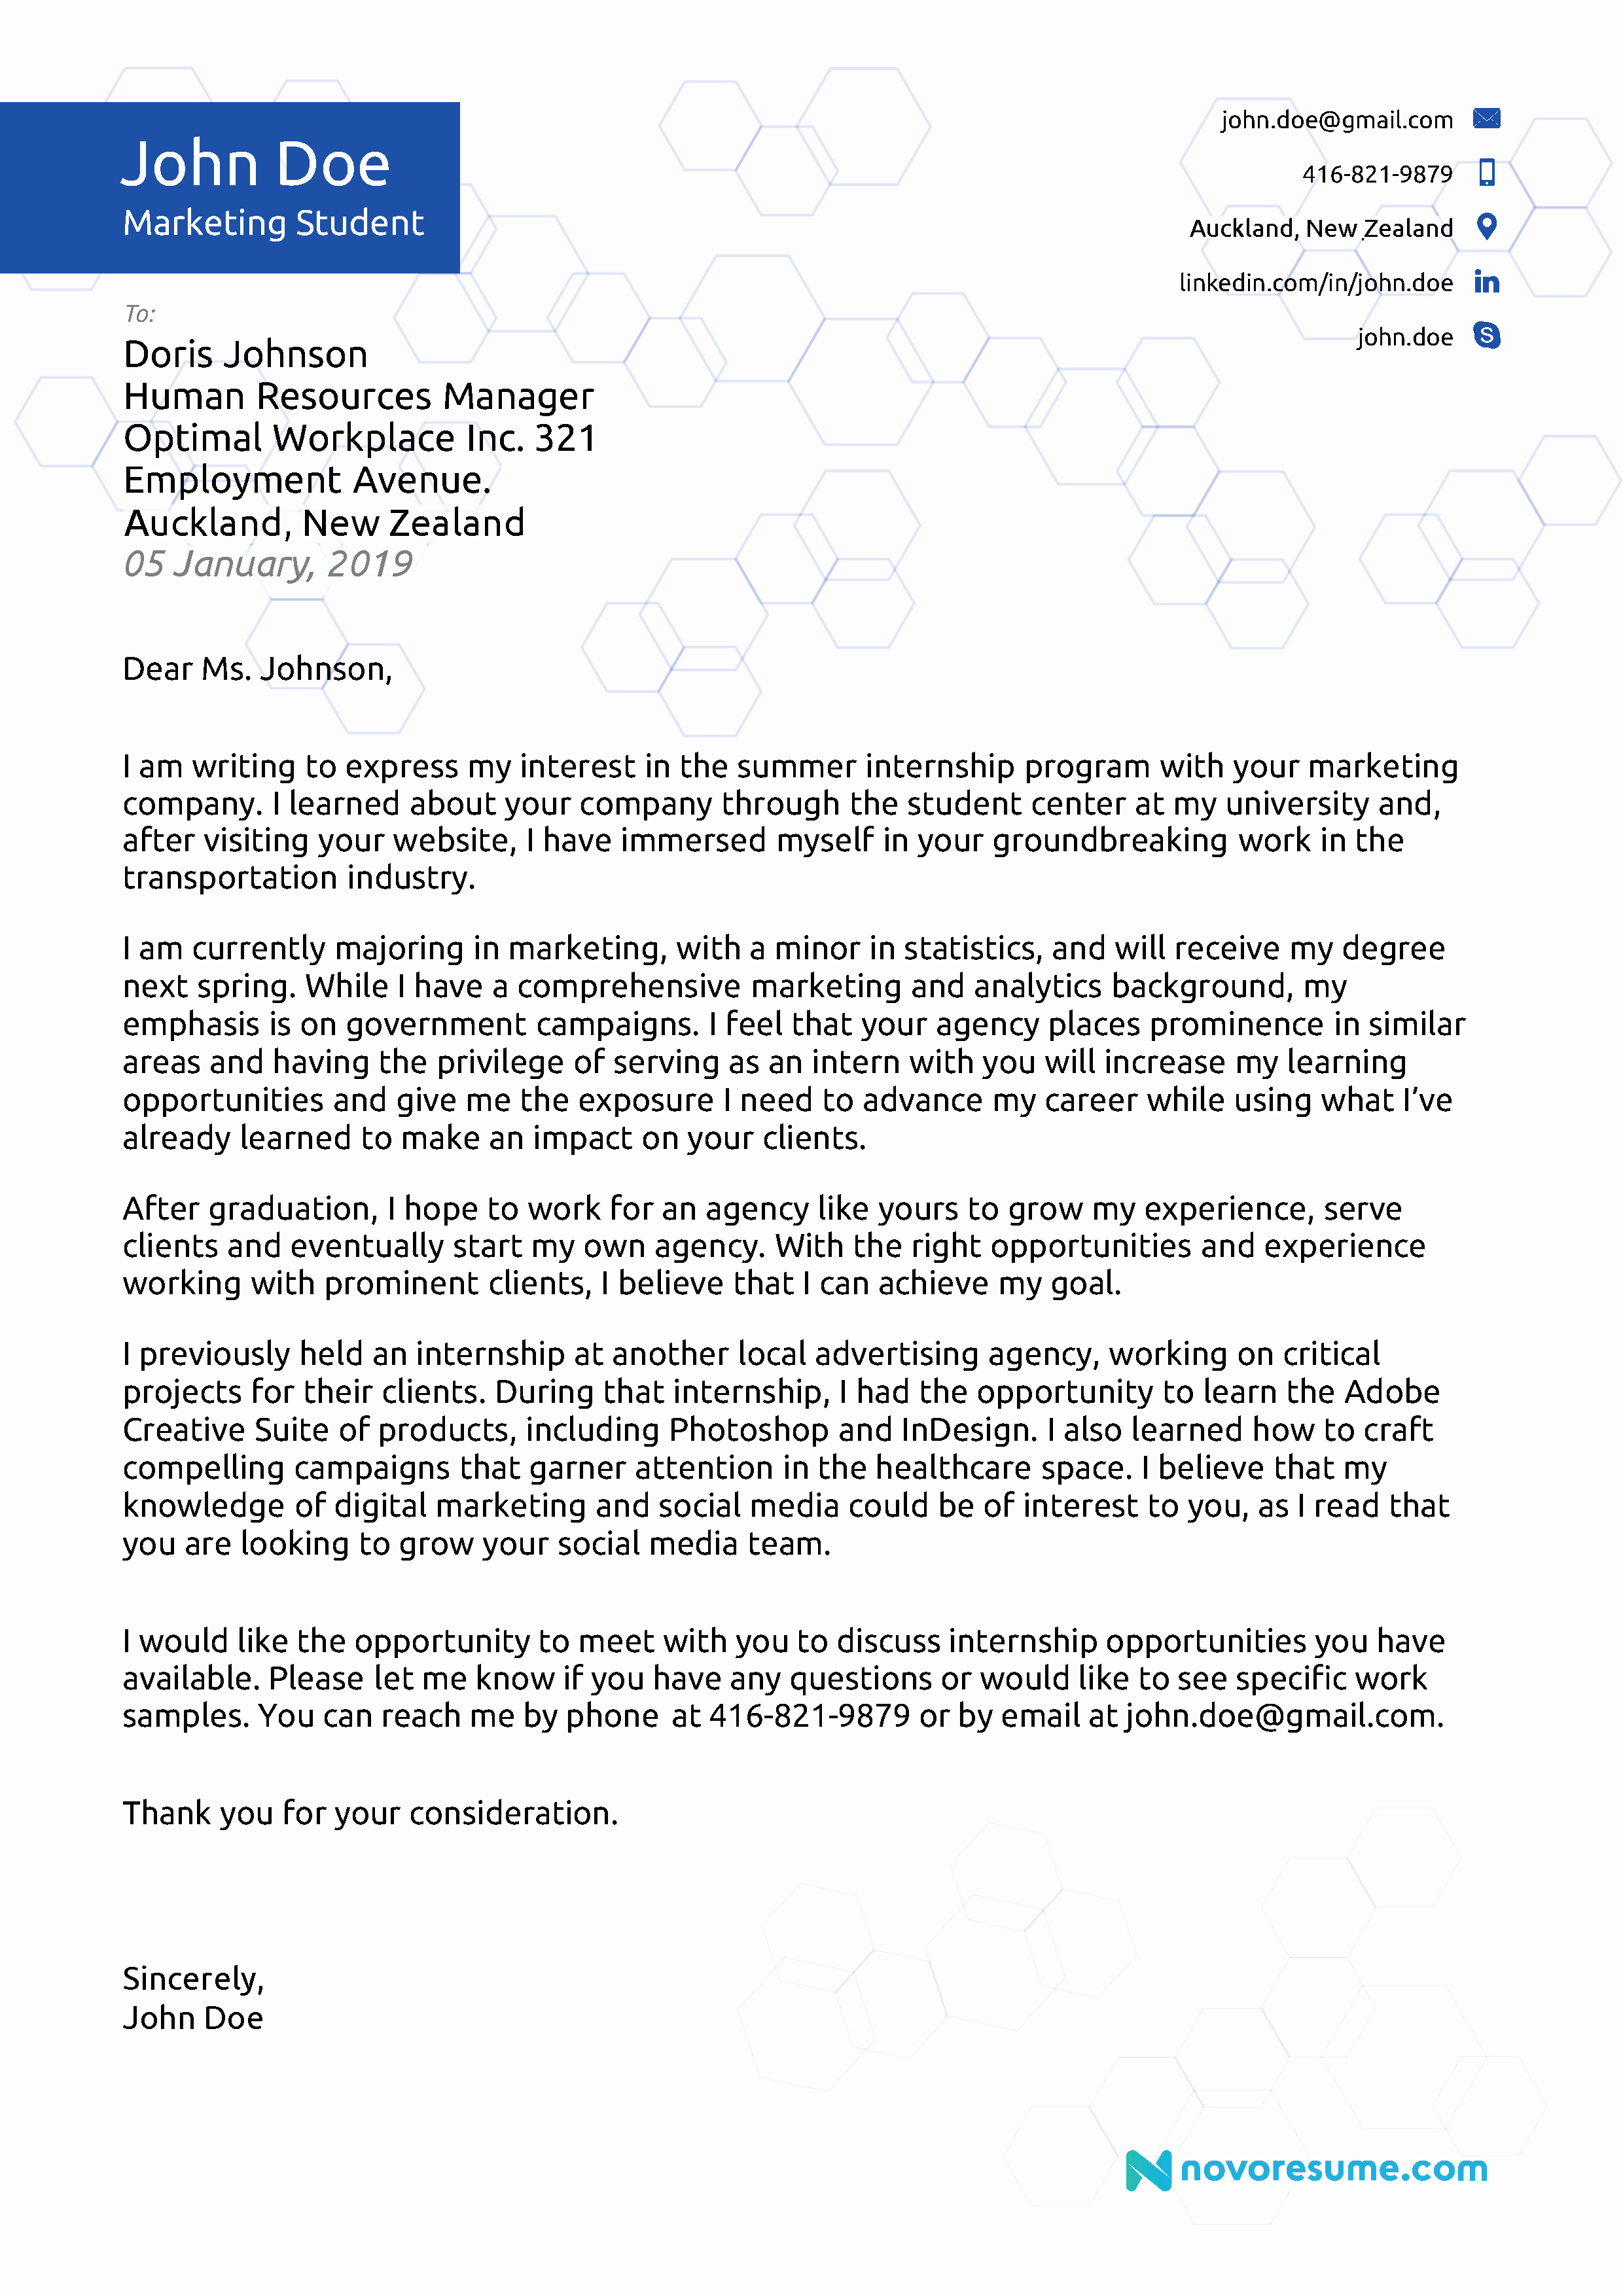 Letters Of Application Examples Fresh Cover Letter Examples for 2019 [ Writing Tips]